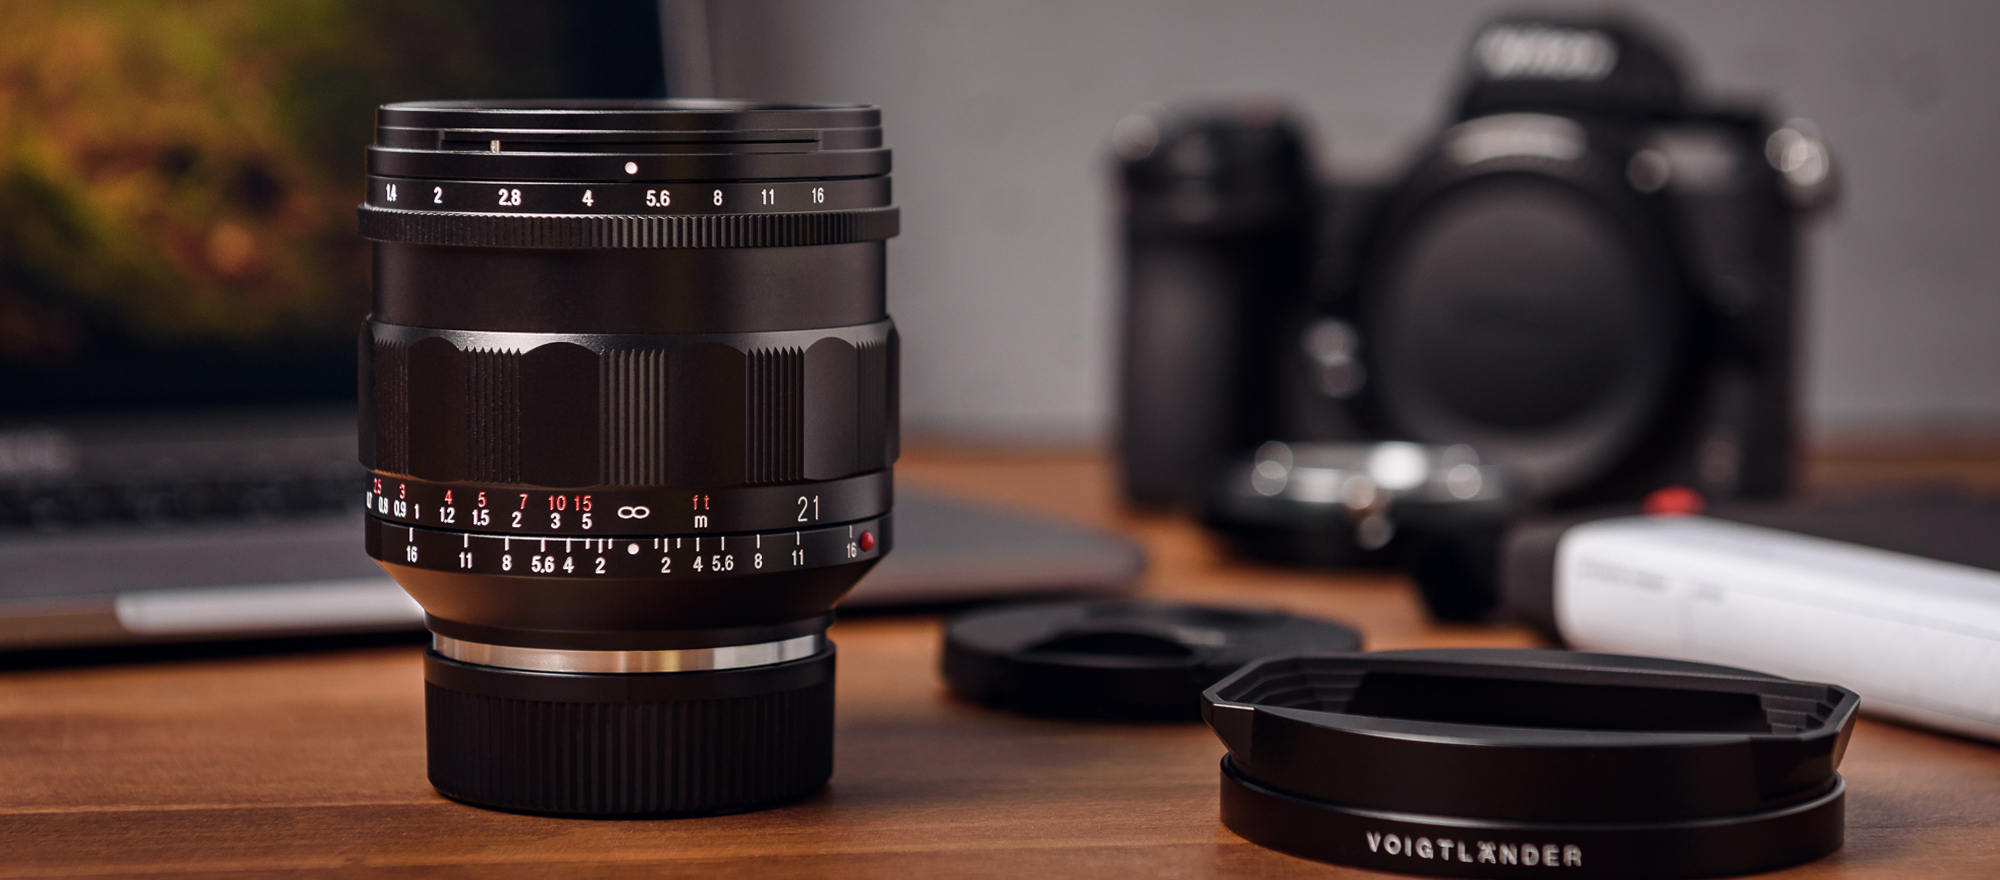 Voigtlander Nokton 21mm f/1.4 lens with Leica M mount on desk with accessories